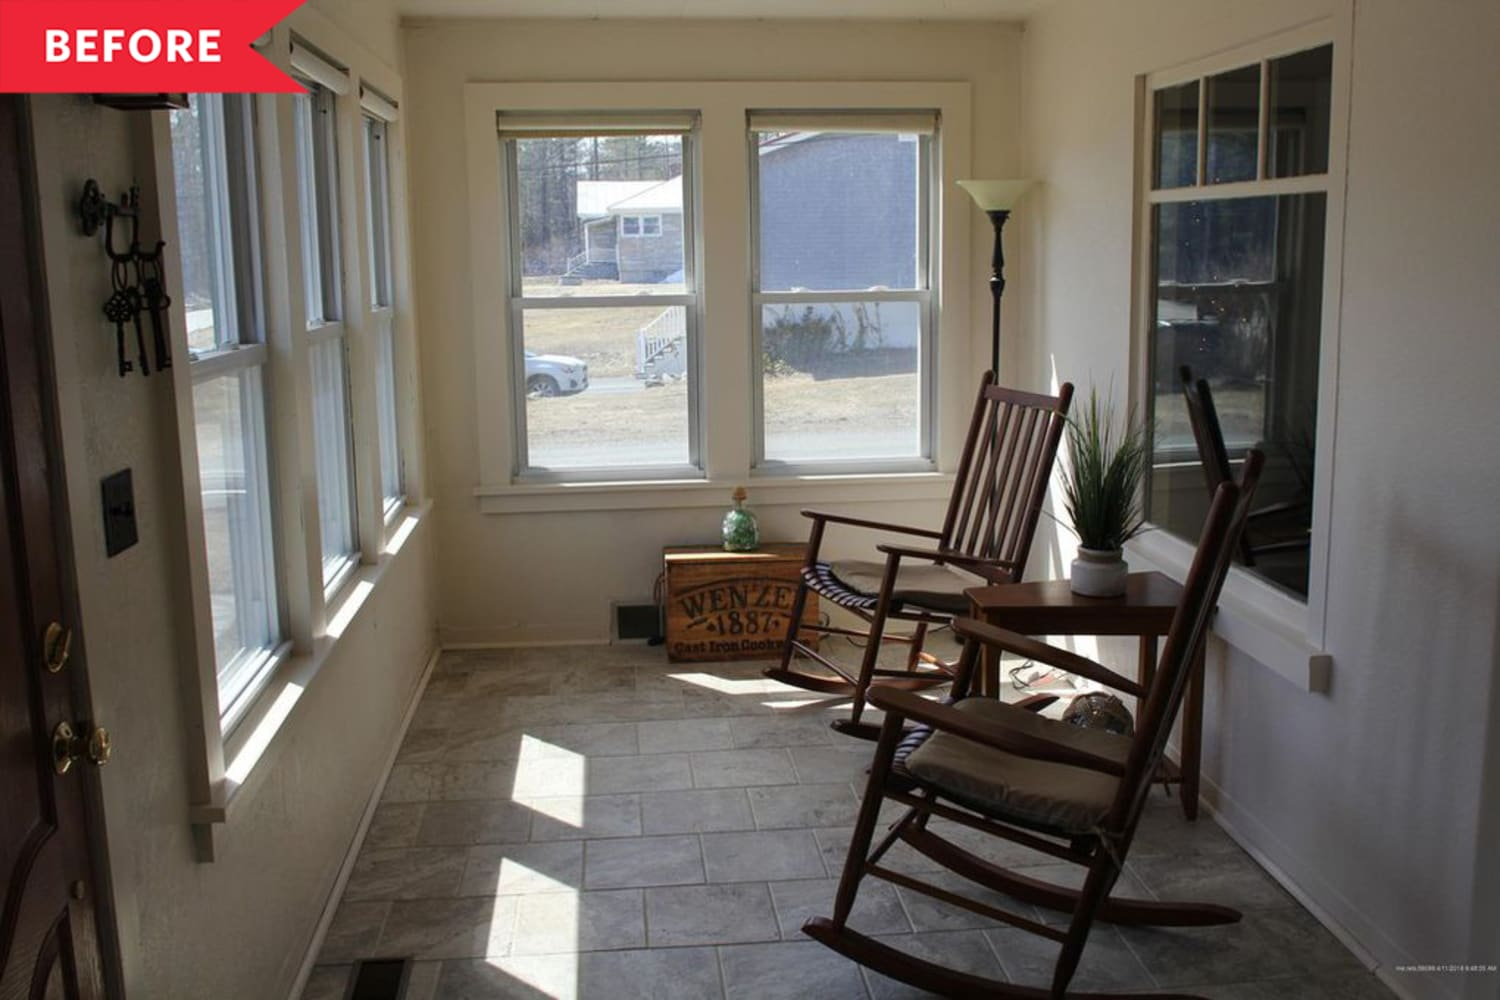 Before and After: A DIY Redo Fills This Dreary Sunroom with Good Vibes